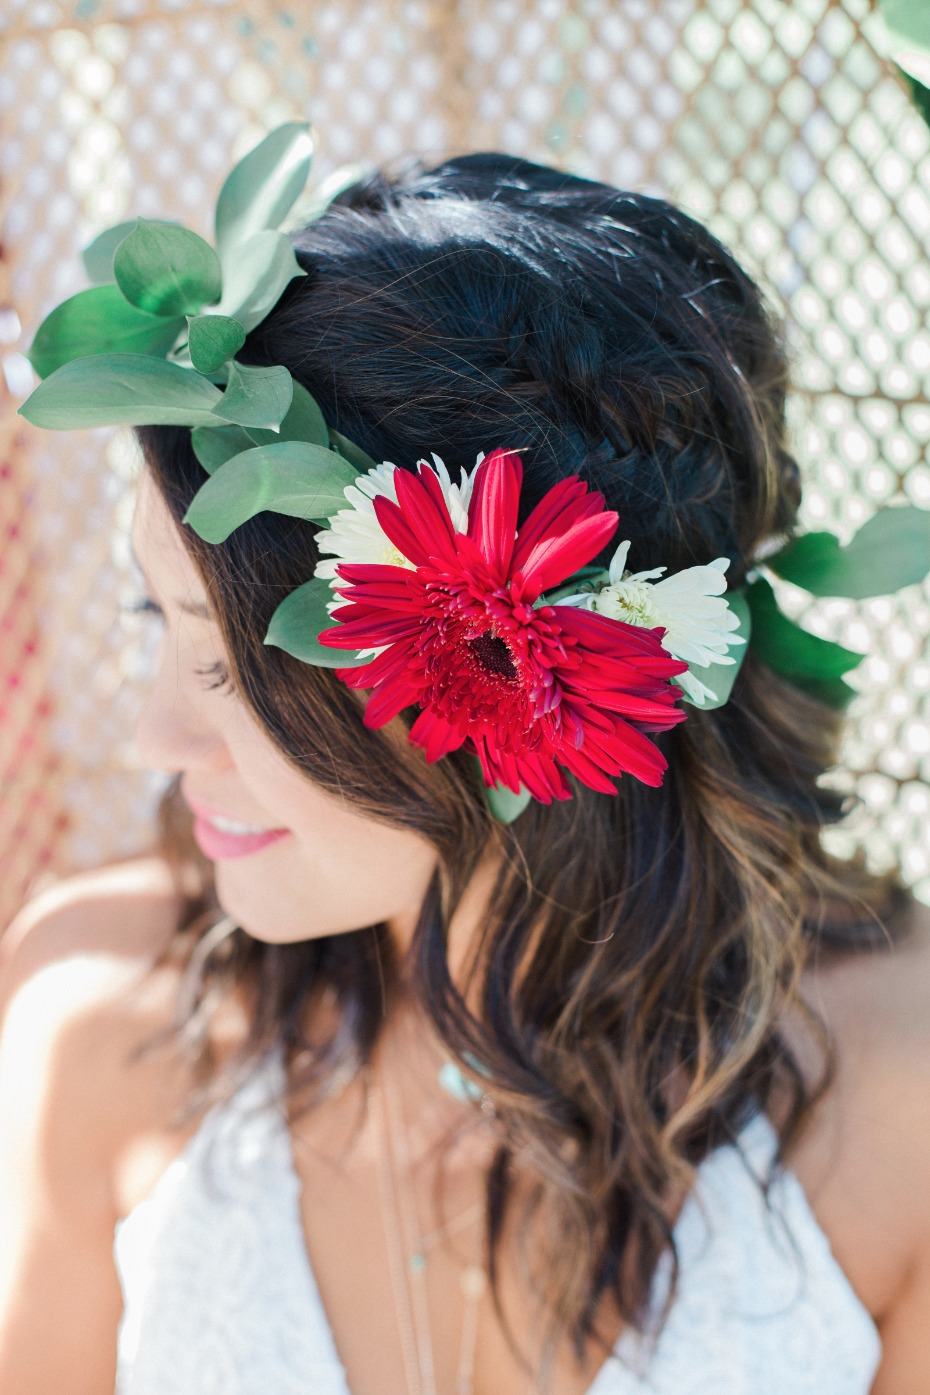 Bridal shower flower crown idea